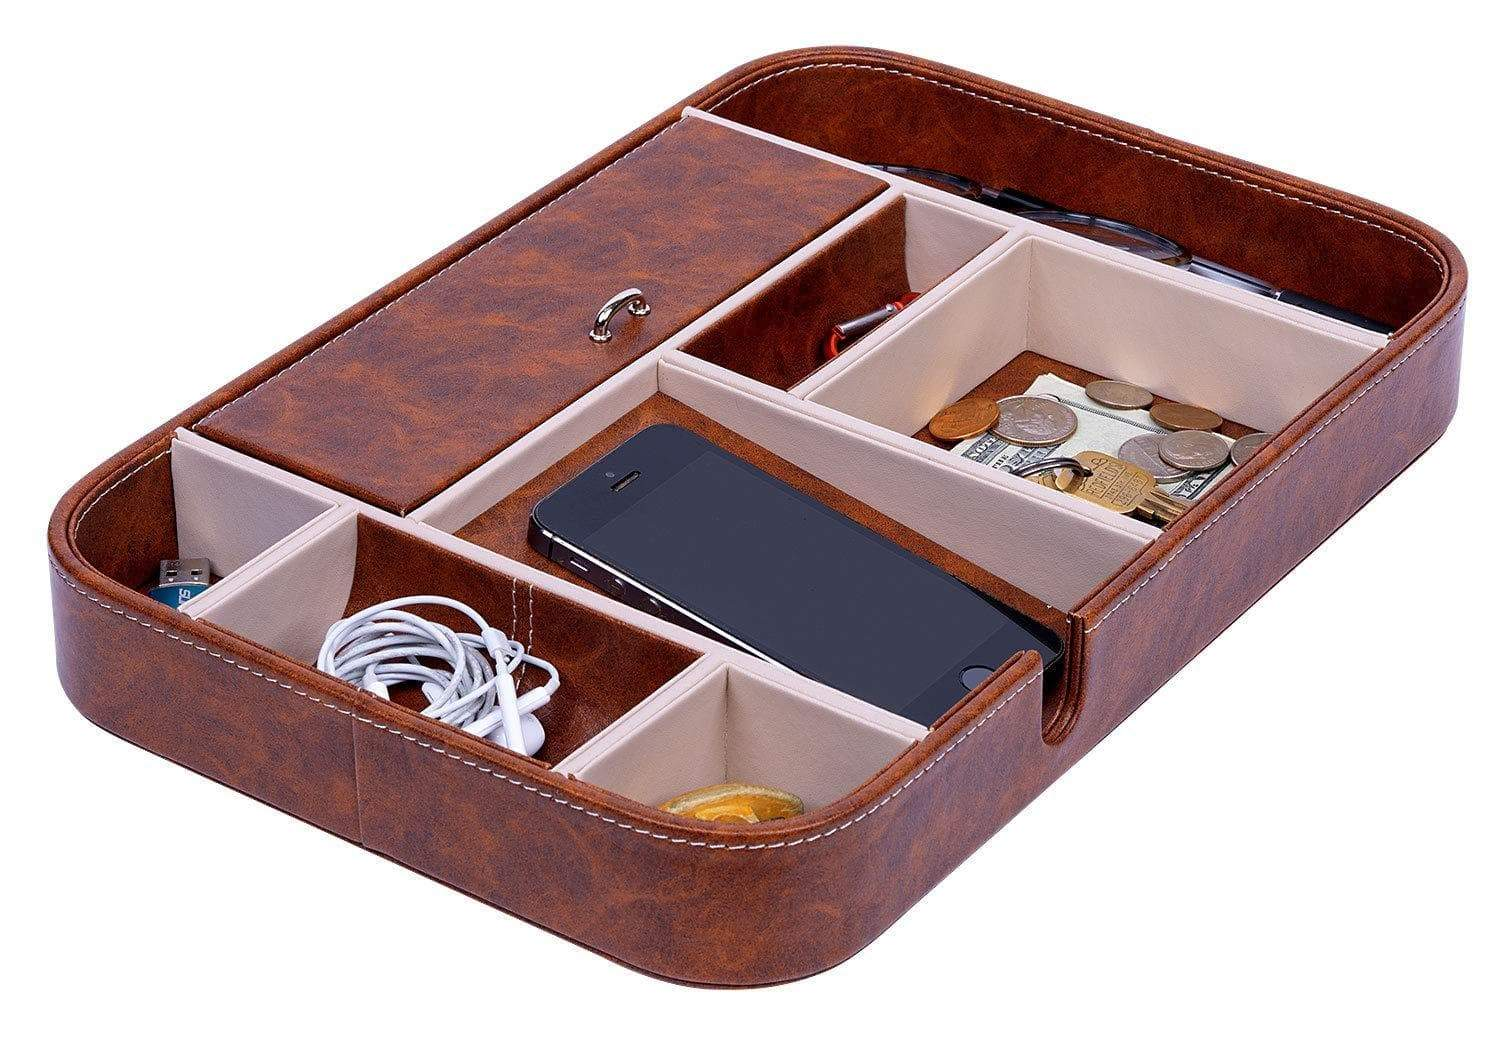 New Makuzo Nightstand Organizer And Valet Tray For Men And